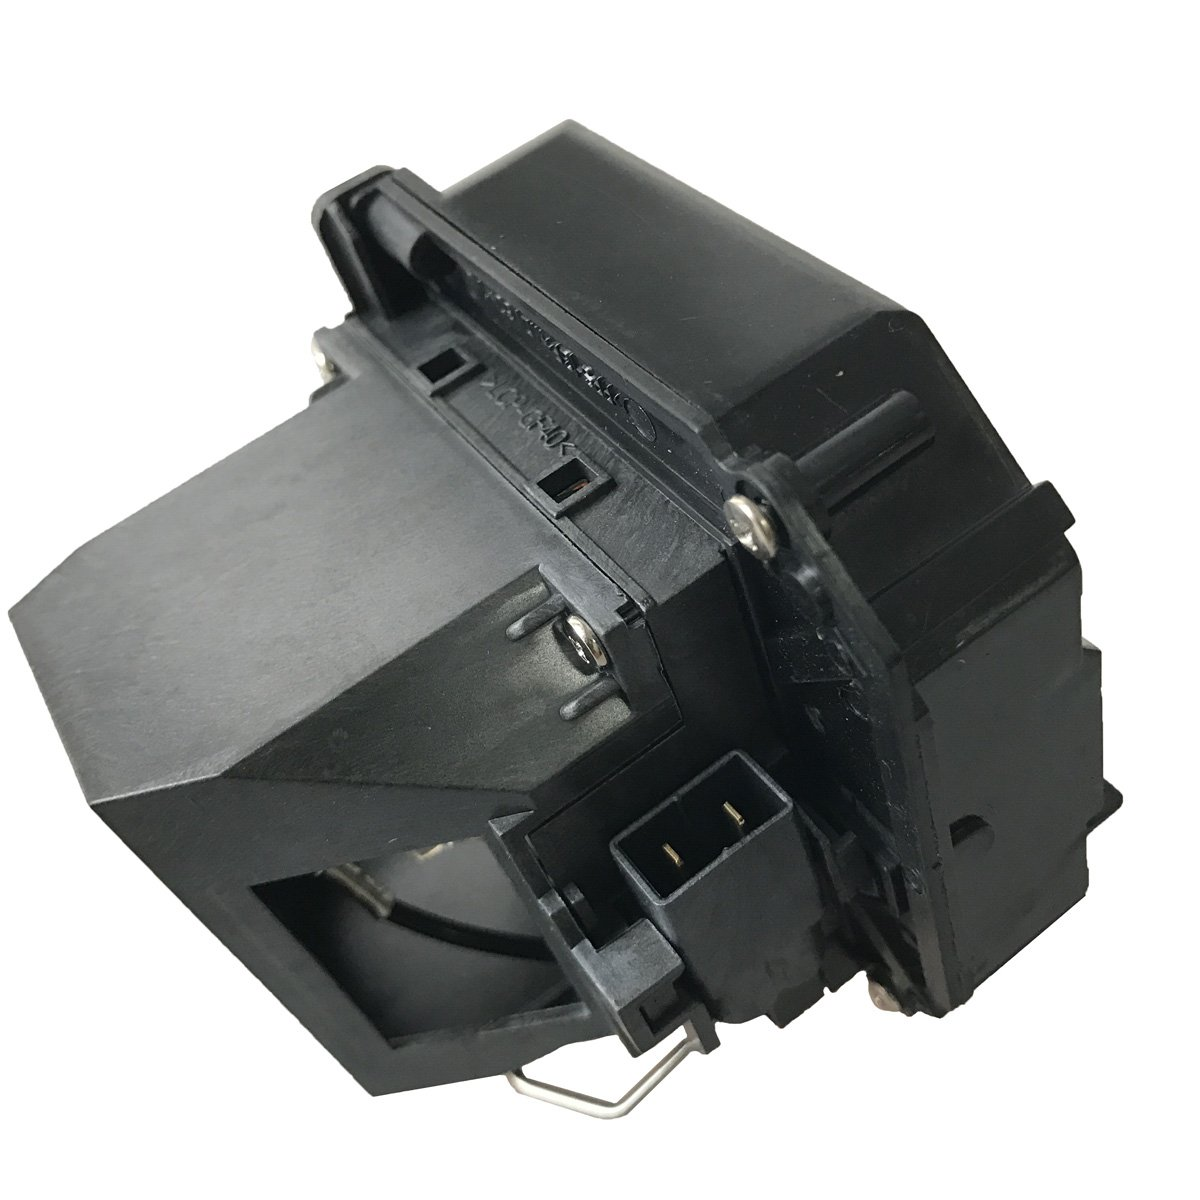 Litance V13H010L60 Replacement Lamp for Epson ELPLP60, Brightlink 425Wi/ 430Wi, PowerLite 420/ 425W/ 905/92/ 93/93+/ 95/ 96W Projectors by Litance (Image #7)